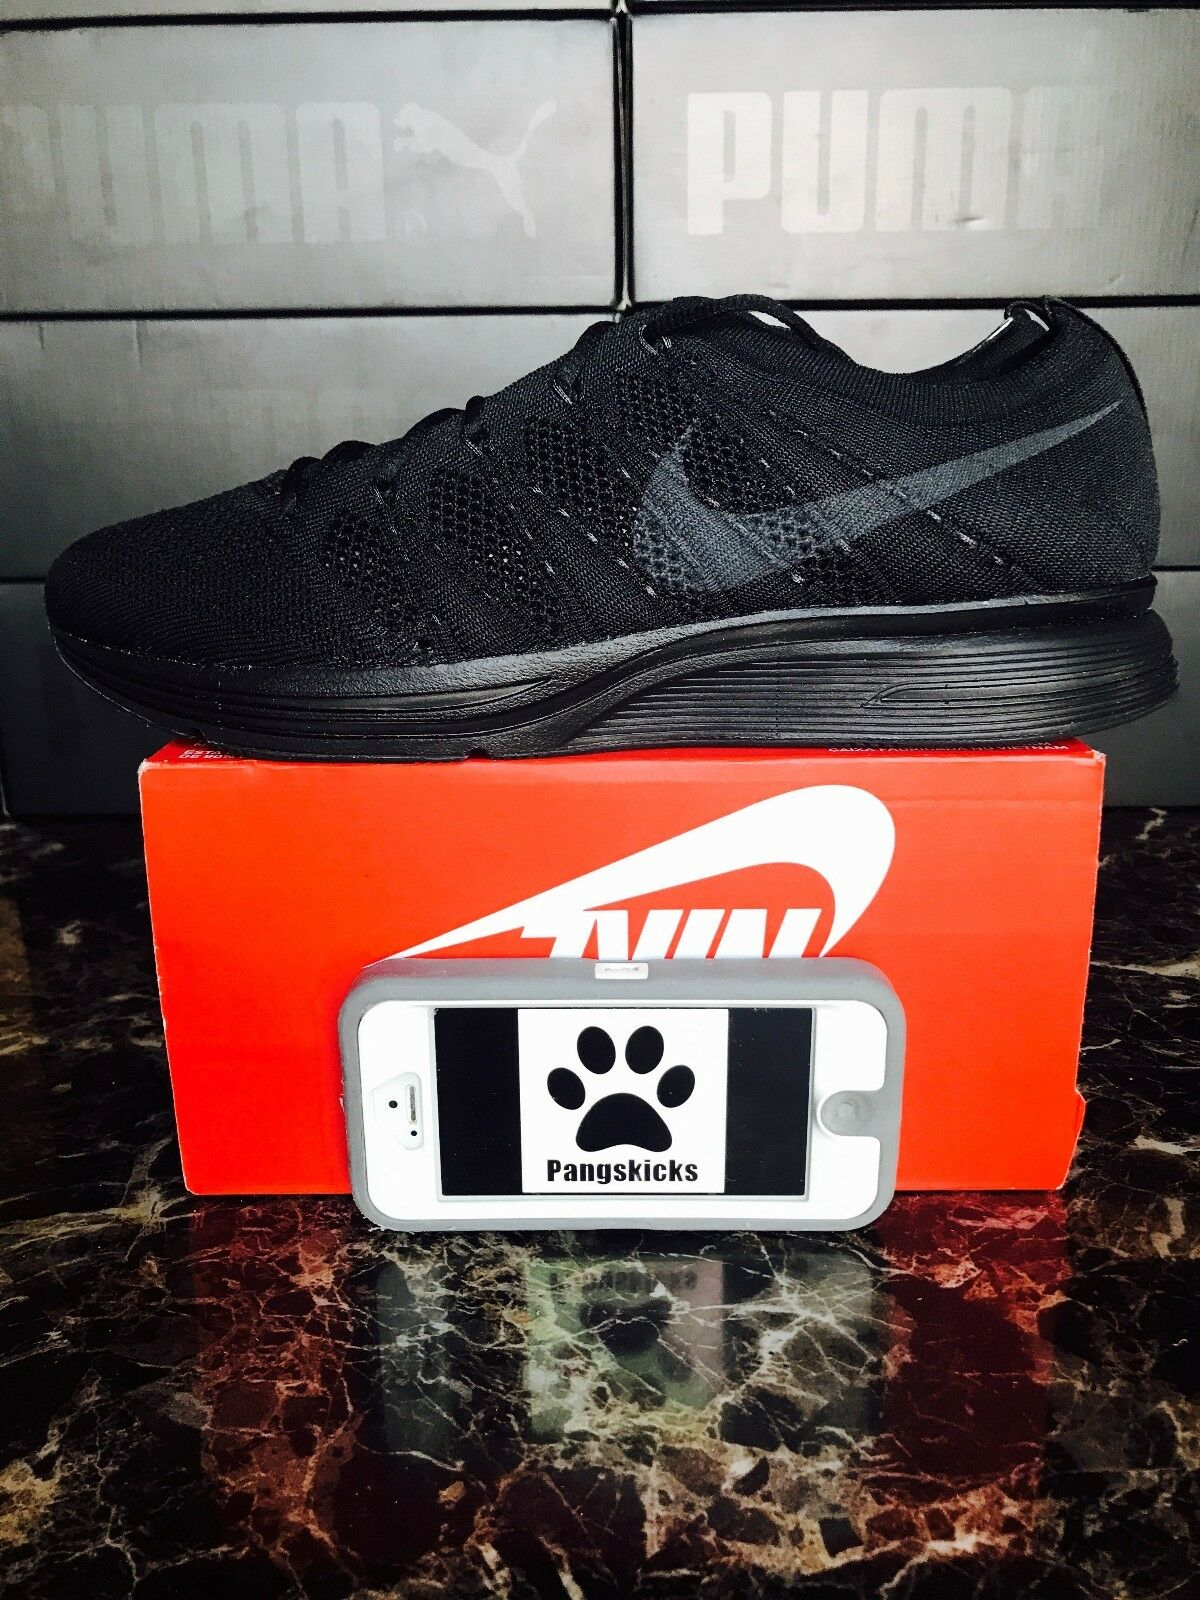 Nike Flyknit Trainer 'Black Anthracite' AH8396-004 Size 8.5-10